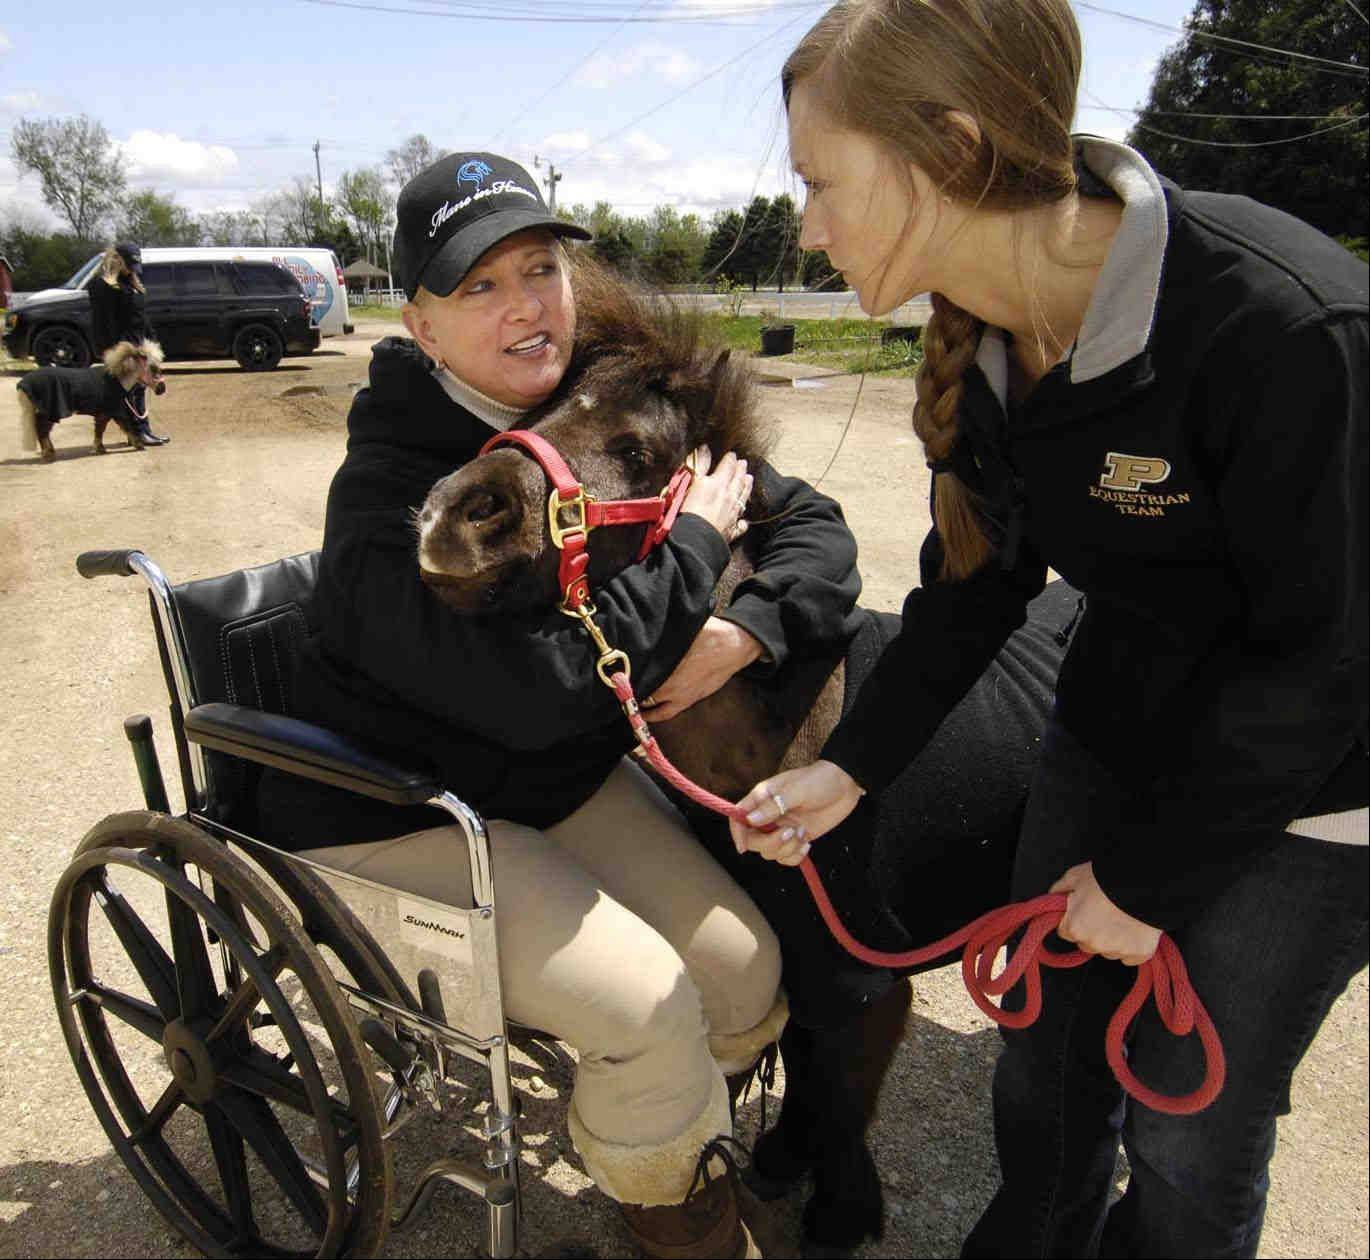 Jodie Diegel trains Lara Budmats, treasurer for Mane In Heaven, and Turnabout, a 2-year-old male miniature horse to be calm around a wheelchair. The handlers and horses must work together for the safety of all during visits.